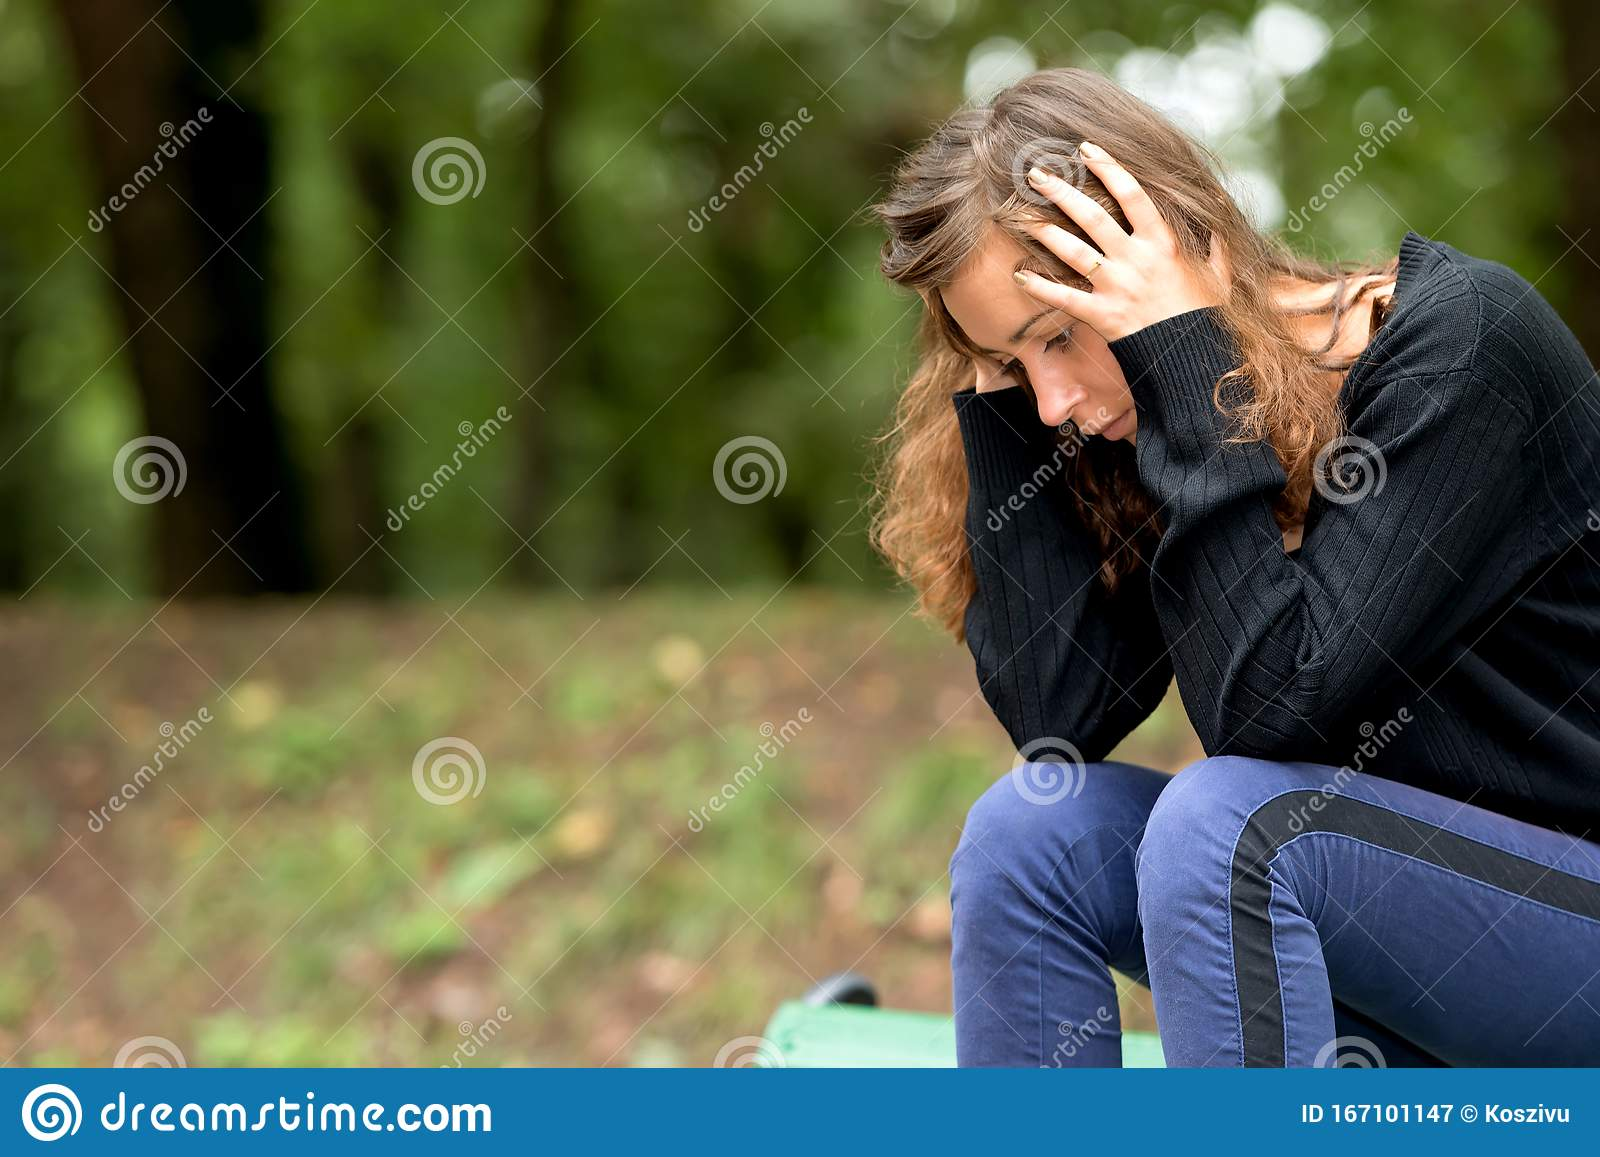 Depressed Woman In Stress Stock Image Image Of Hands 167101147